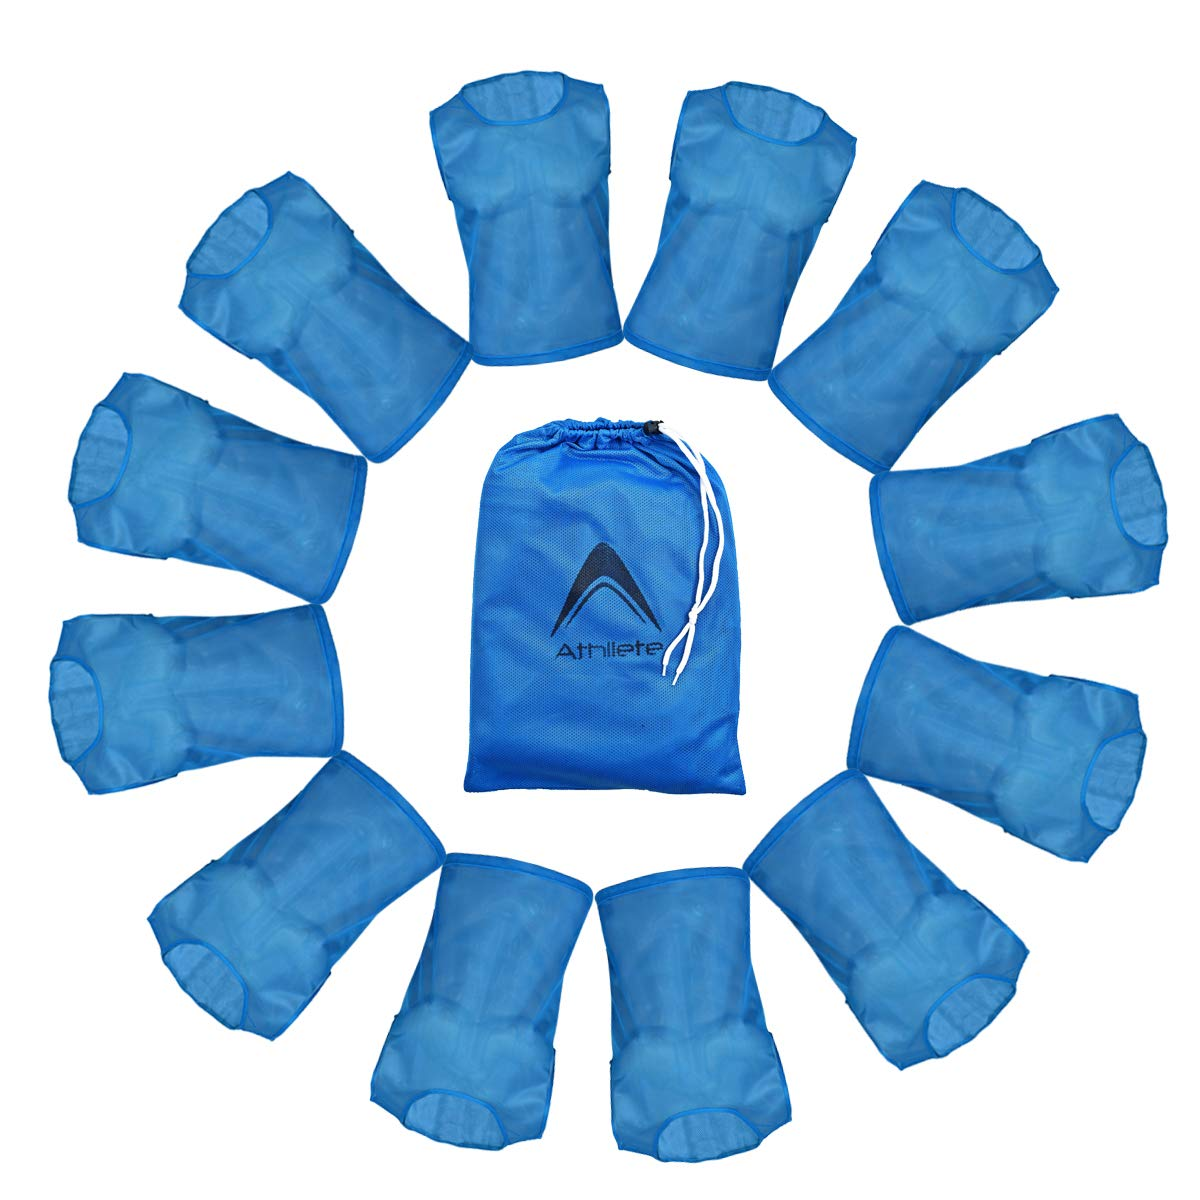 Athllete Set of 12 - Child Scrimmage Vests/Pinnies/Team Practice Jerseys with Free Carry Bag (Azure Blue, Small)